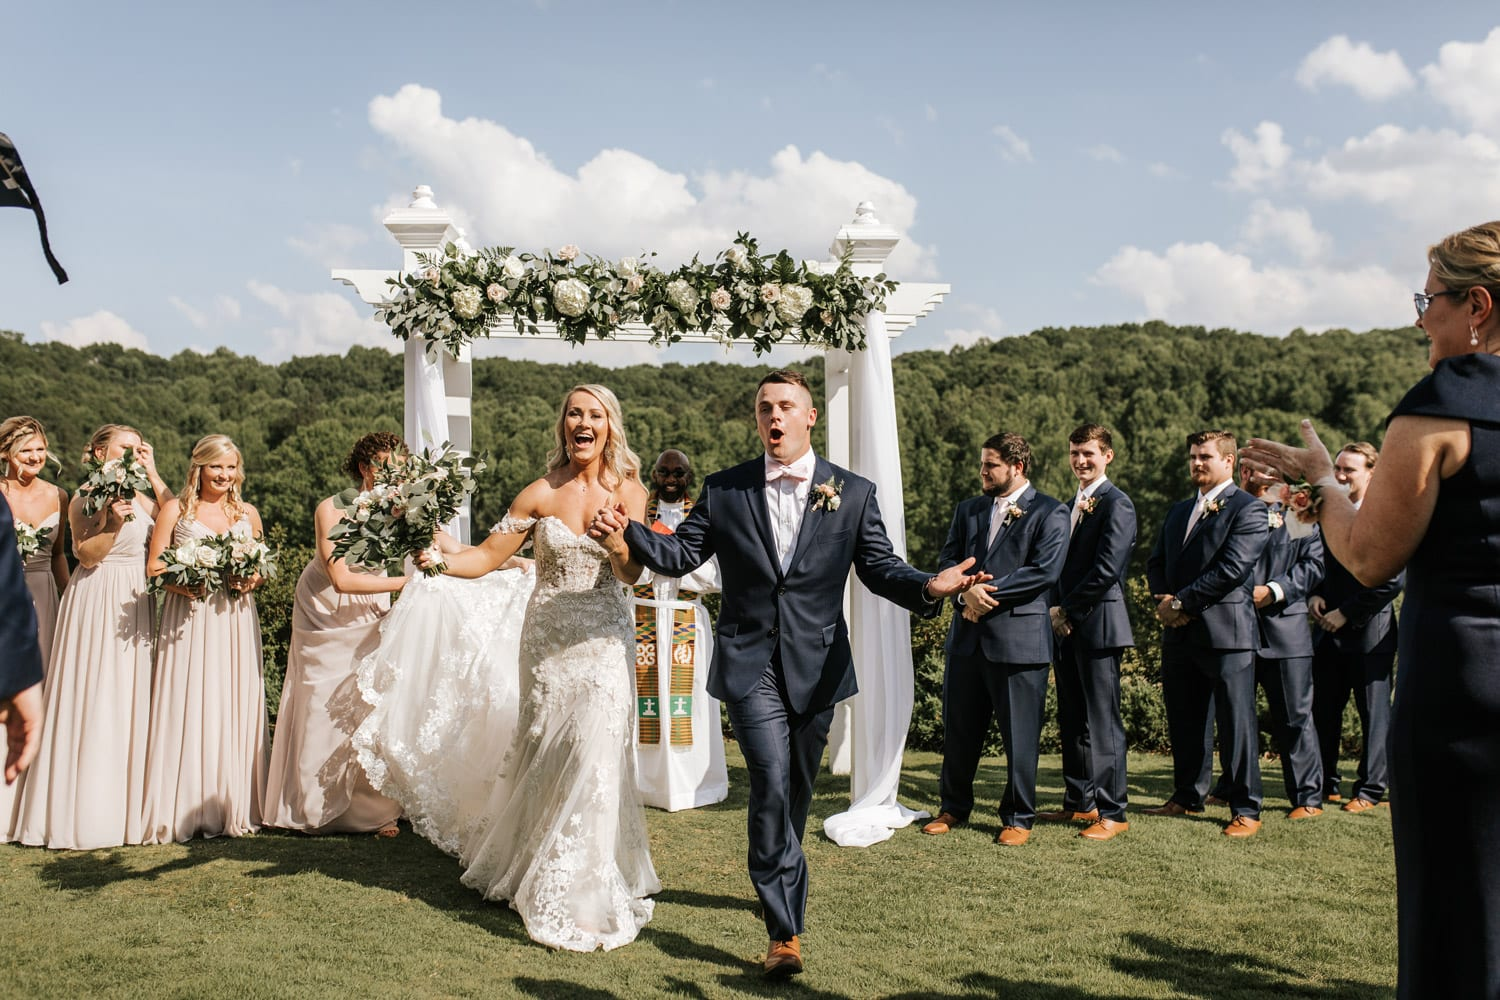 Bride and groom celebrate down the aisle